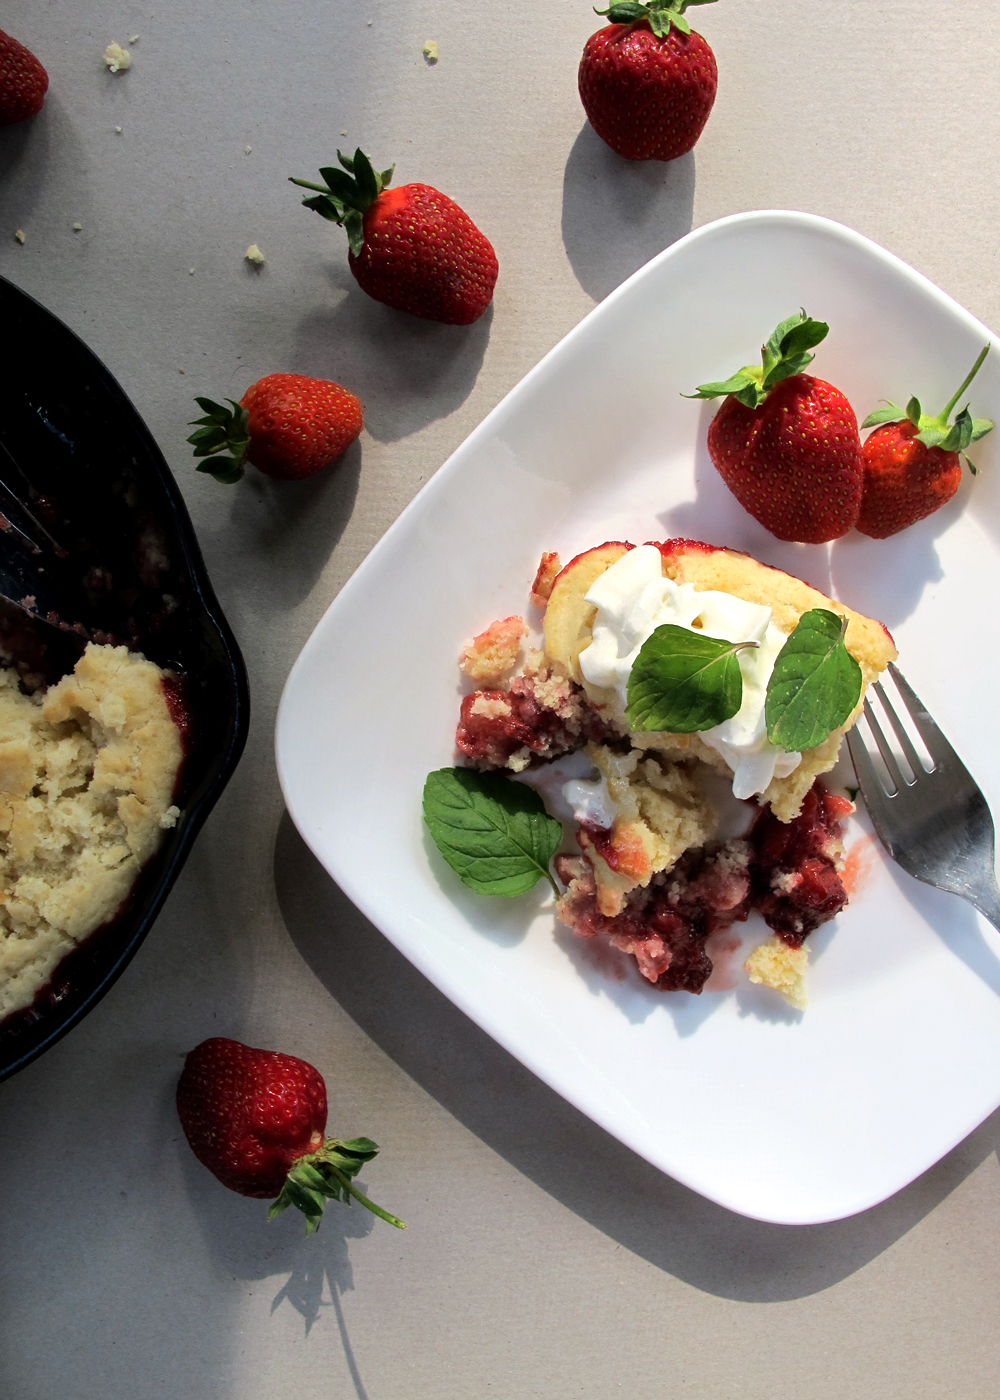 skillet cake with roasted strawberries